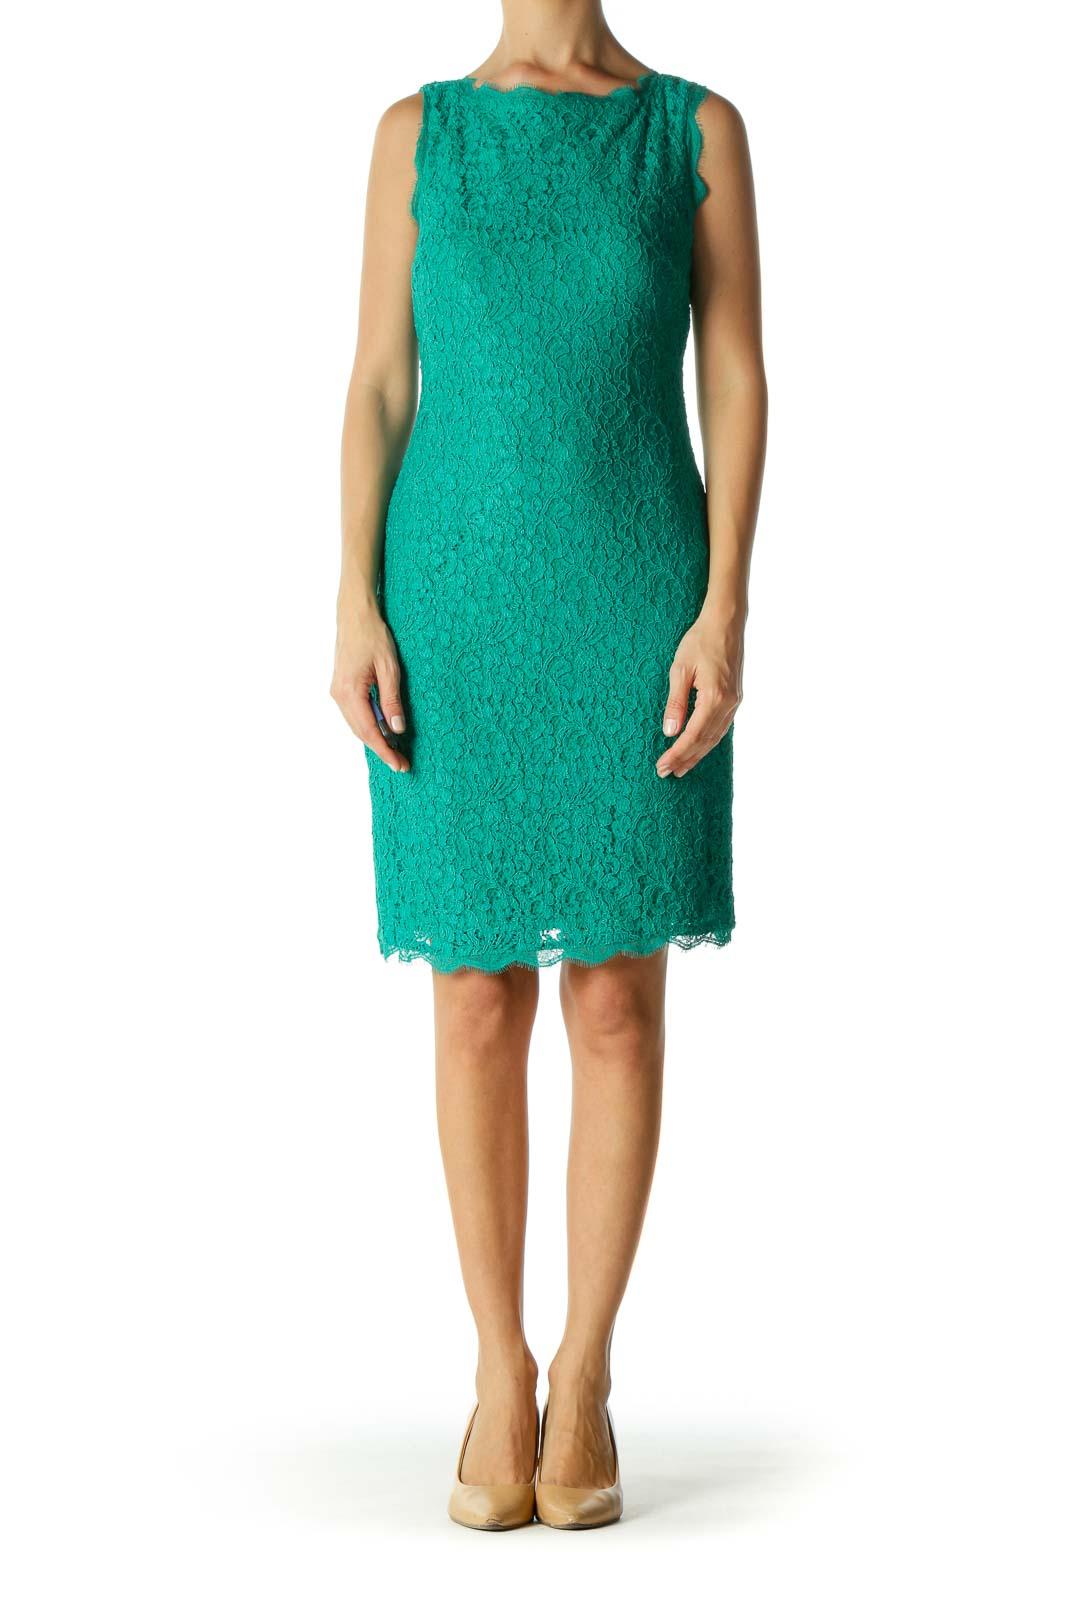 Green Lace Back-V-Neck Fitted Dress